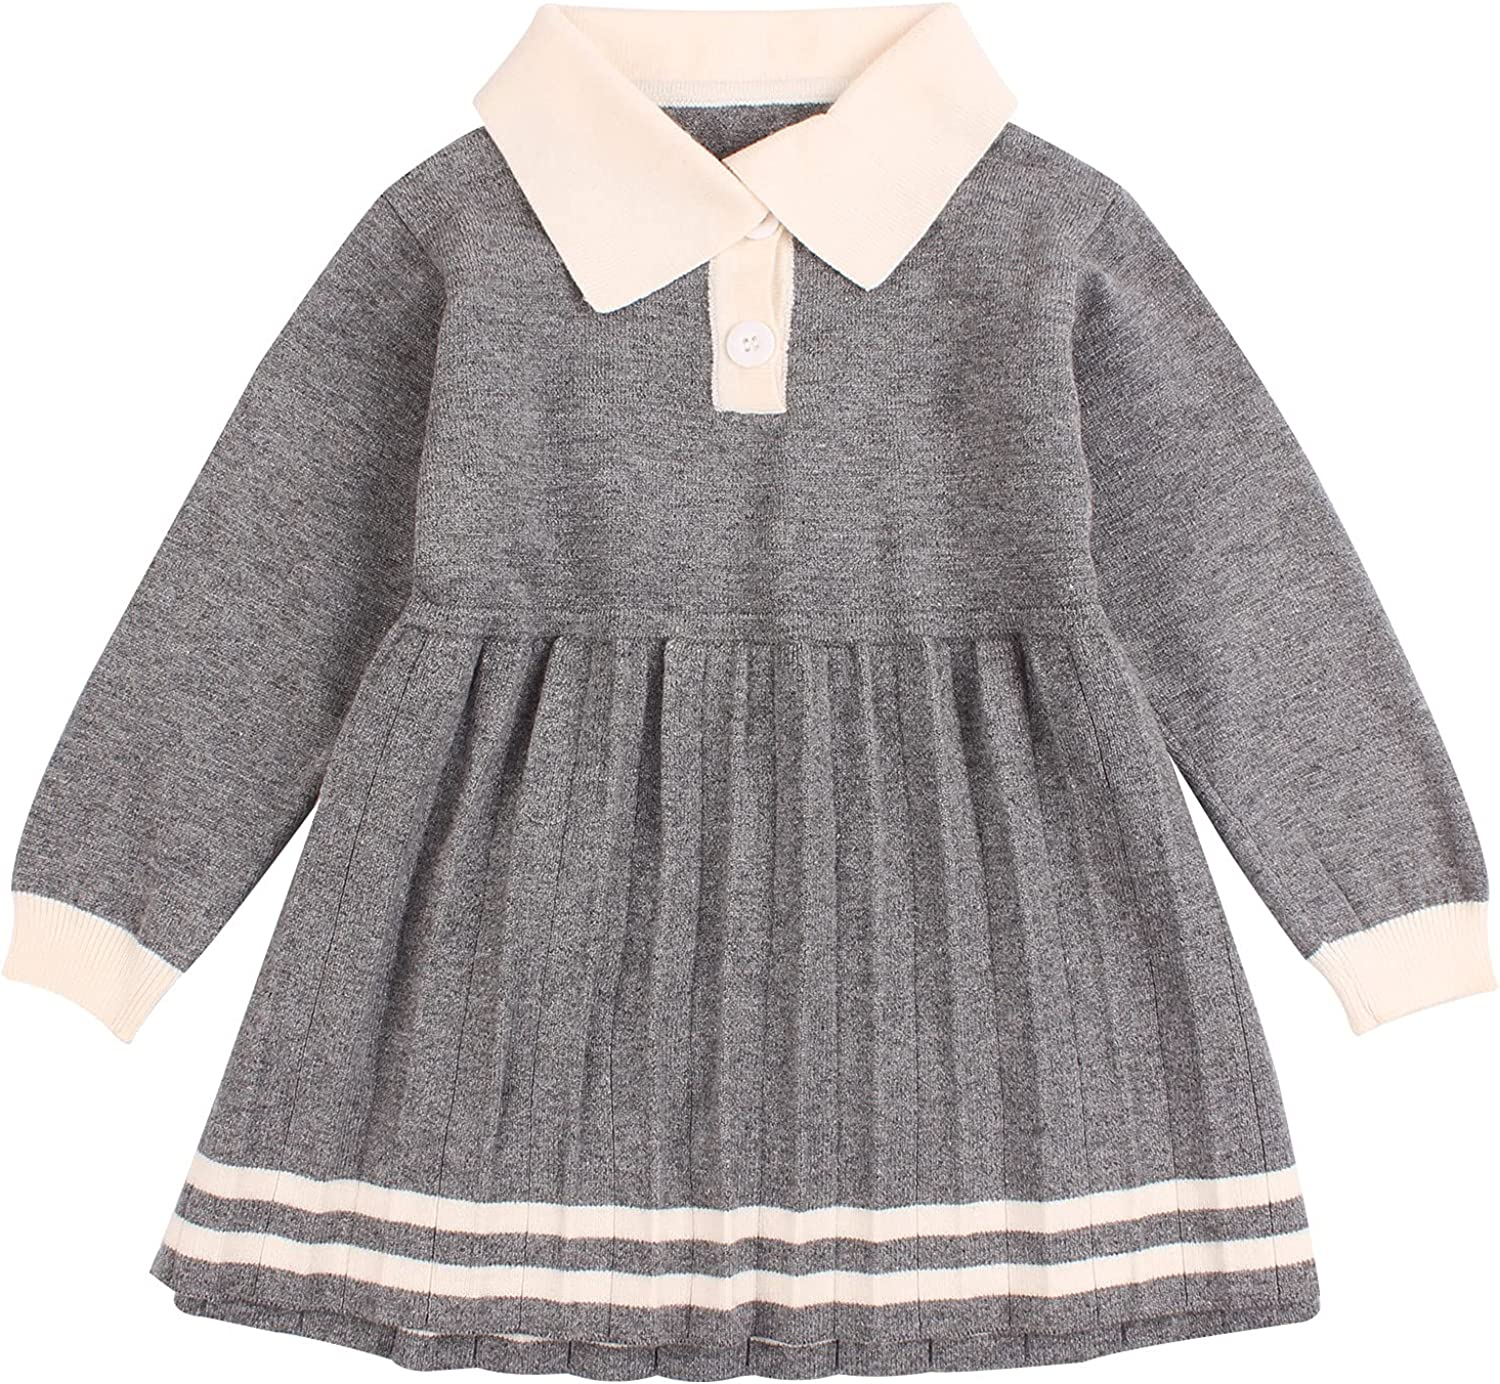 Ruffles Max 42% OFF Baby Girls Cardigan Warm Infant Gi Toddler Sweater Dress Al sold out.